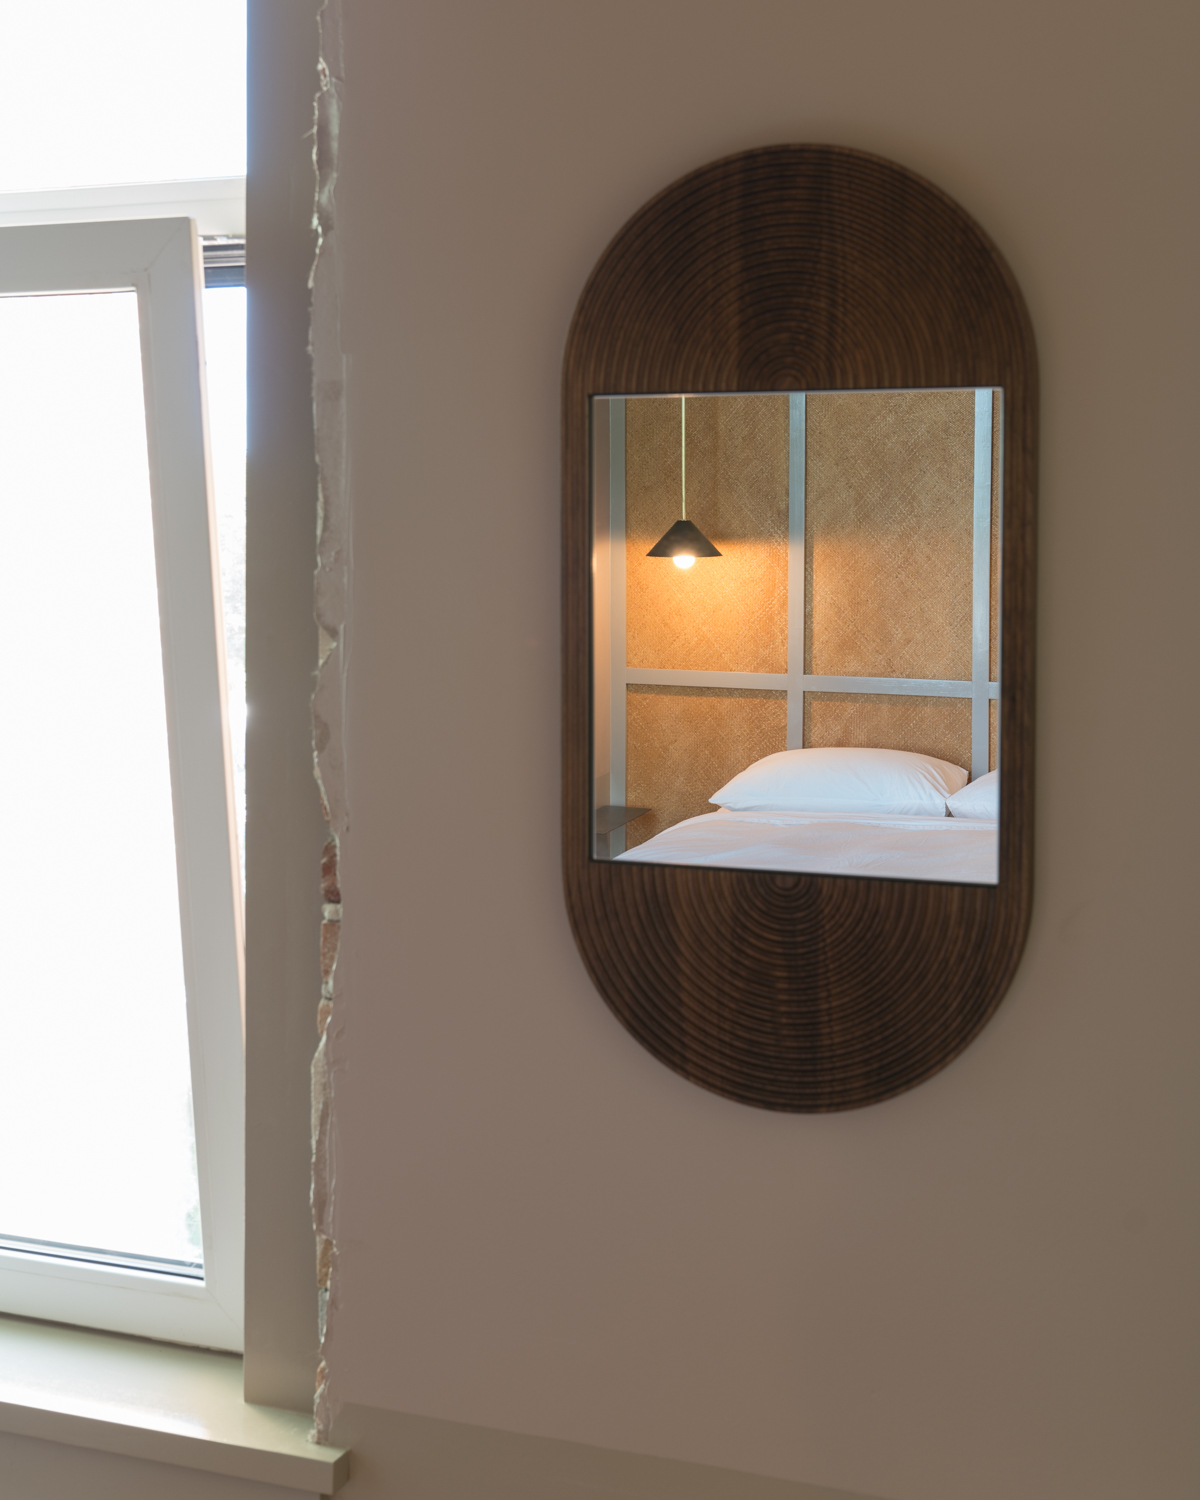 A  June mirror  by By  Coil + Drift  in room 1